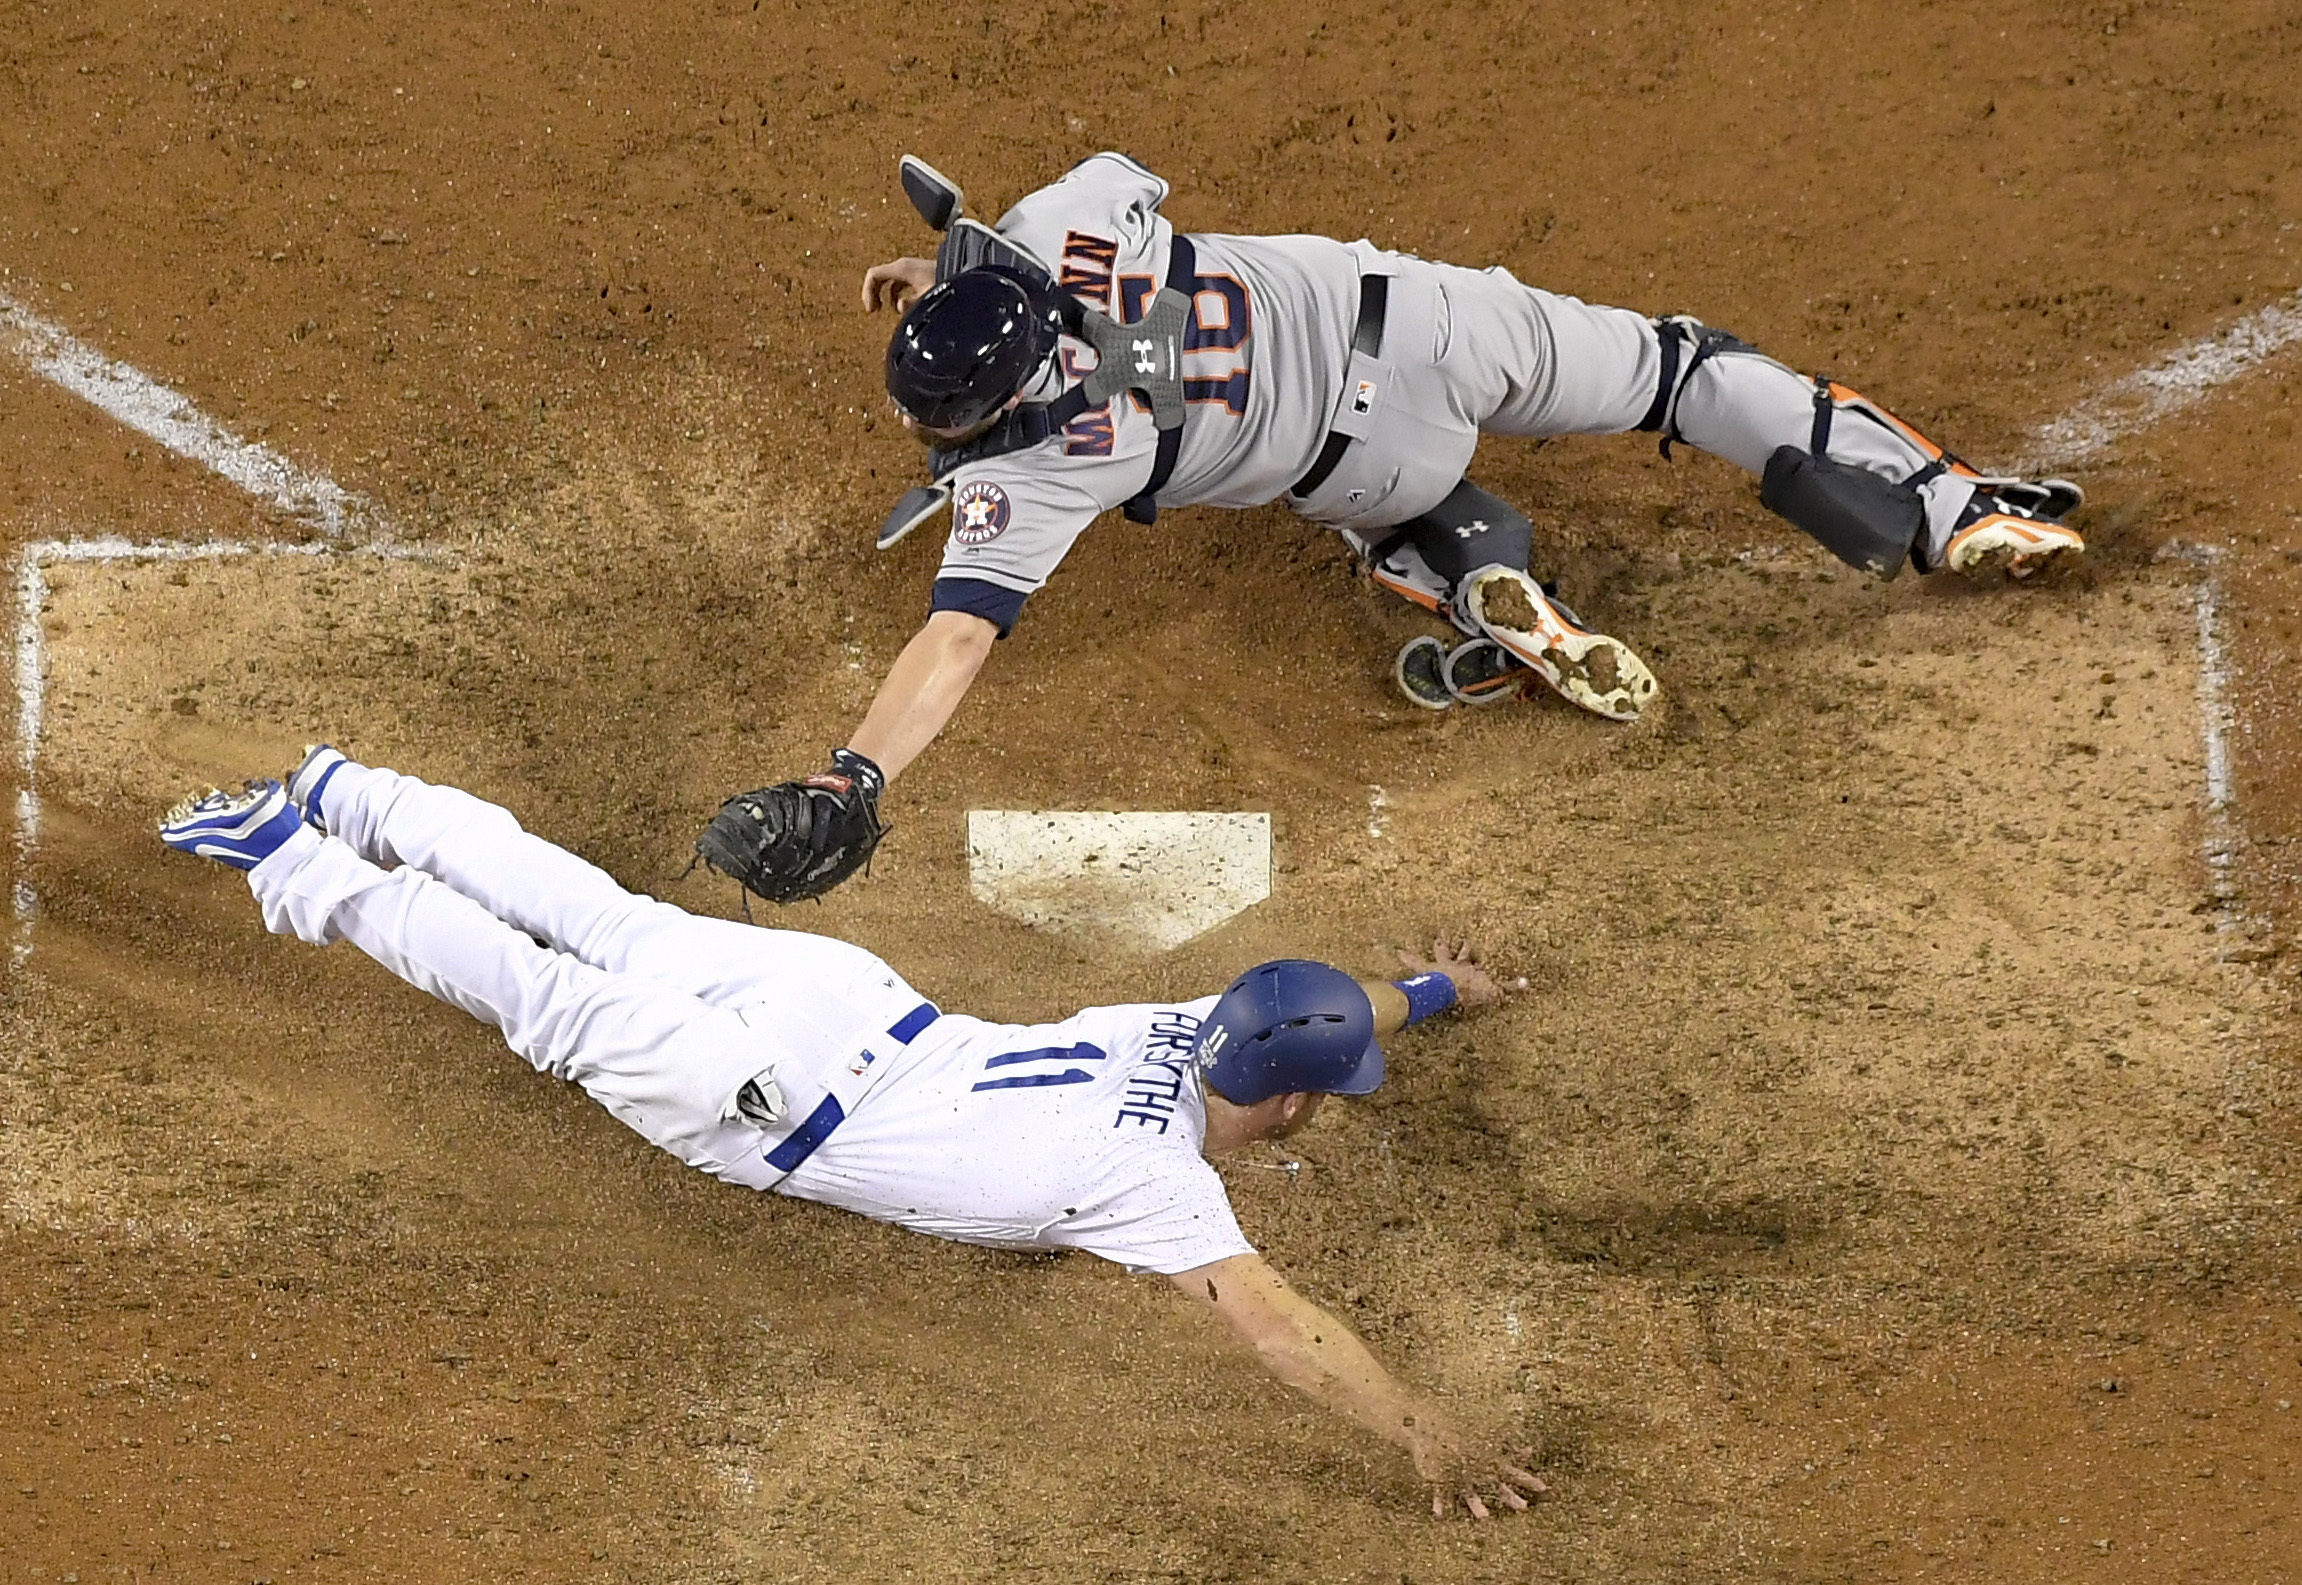 <div class='meta'><div class='origin-logo' data-origin='AP'></div><span class='caption-text' data-credit='(AP Photo/Mark J. Terrill)'>Los Angeles Dodgers' Logan Forsythe, left, scores past Houston Astros catcher Brian McCann on a hit by Enrique Hernandez during the 10th inning of Game 2 of baseball's World Series</span></div>